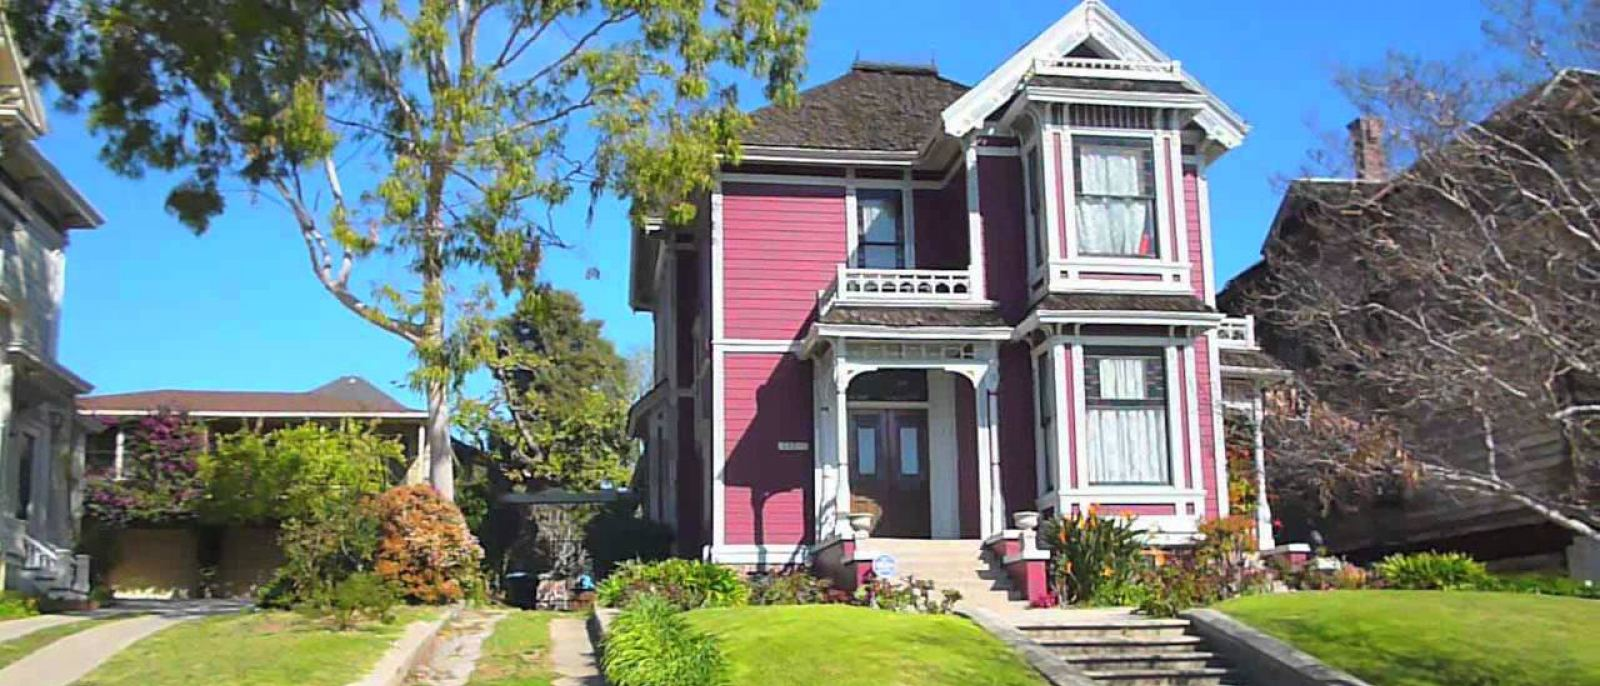 Charmed TV Show House